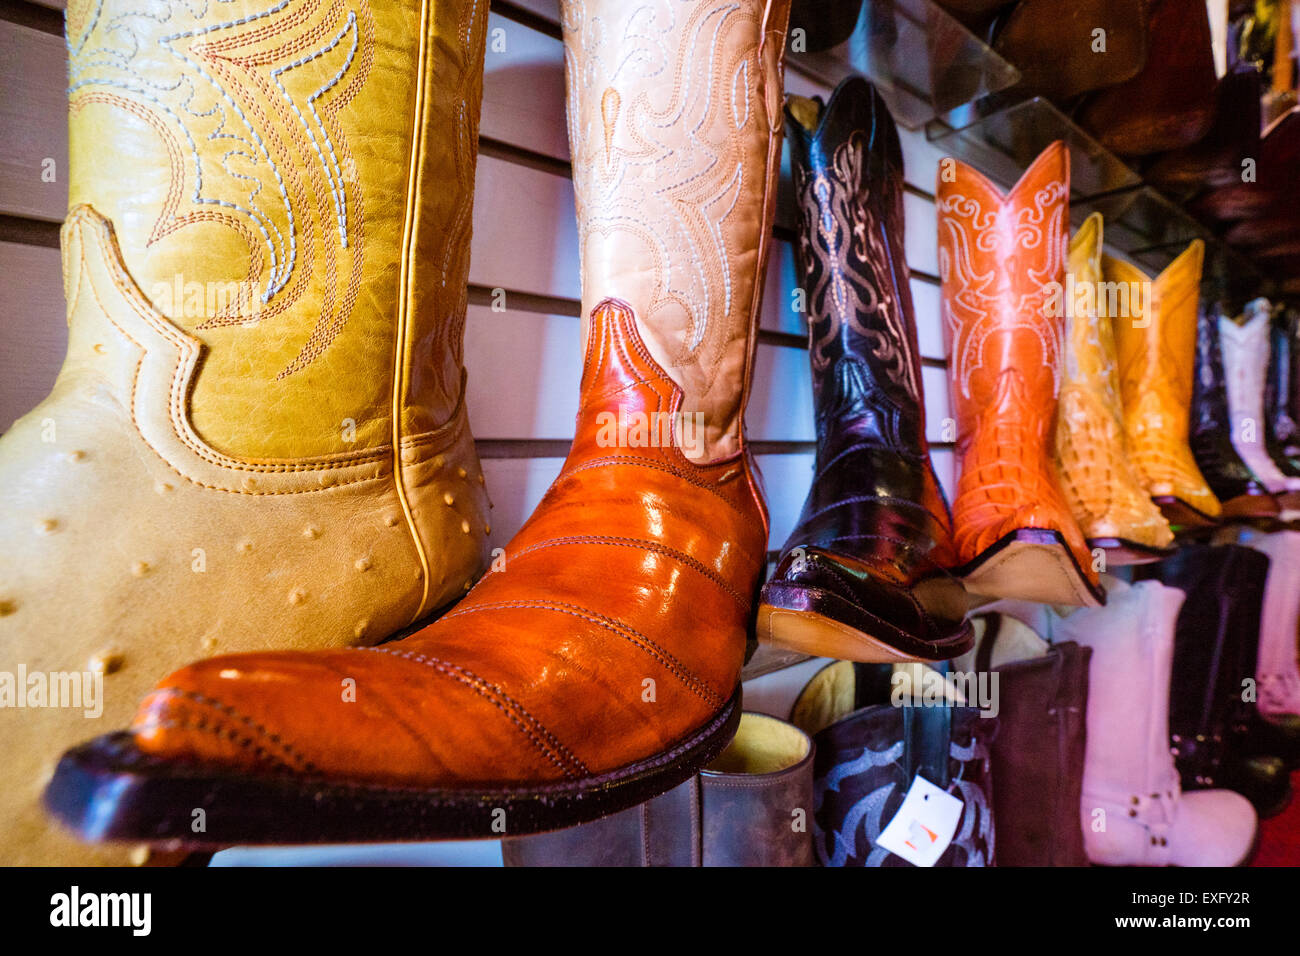 Mexican pointy boots, cowboy boots with elongated toes, on display at a store in Oaxaca Mexico - Stock Image